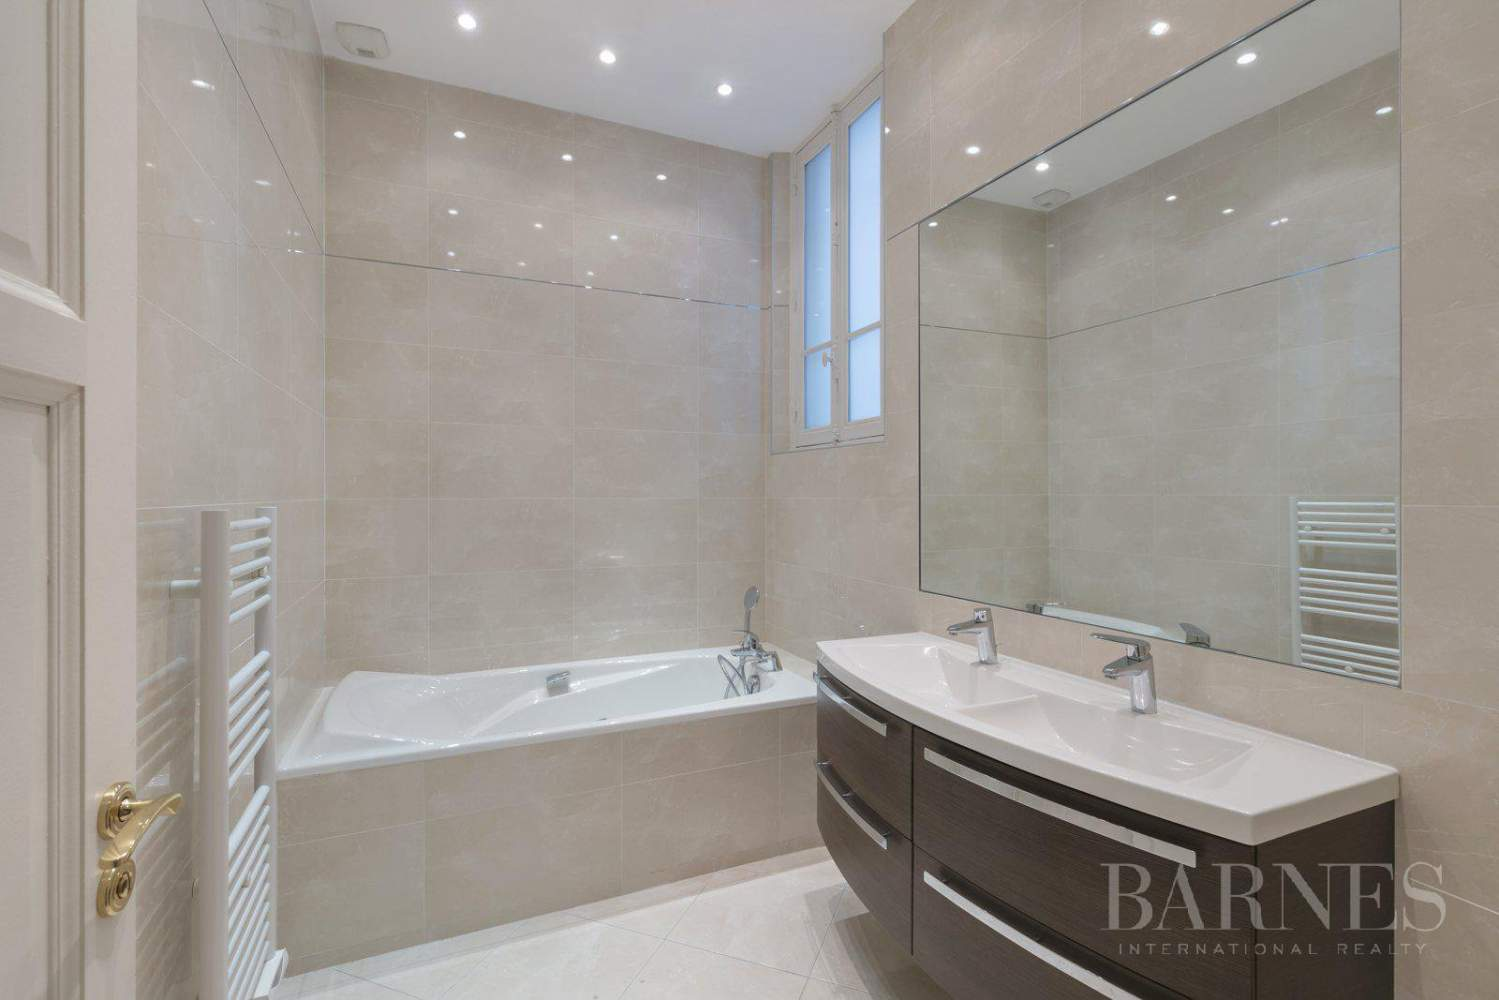 EXCLUSIVE - 8-ROOM APARTMENT FOR SALE - RENOVATED 1930s BUILDING - NEUILLY/PASTEUR picture 7